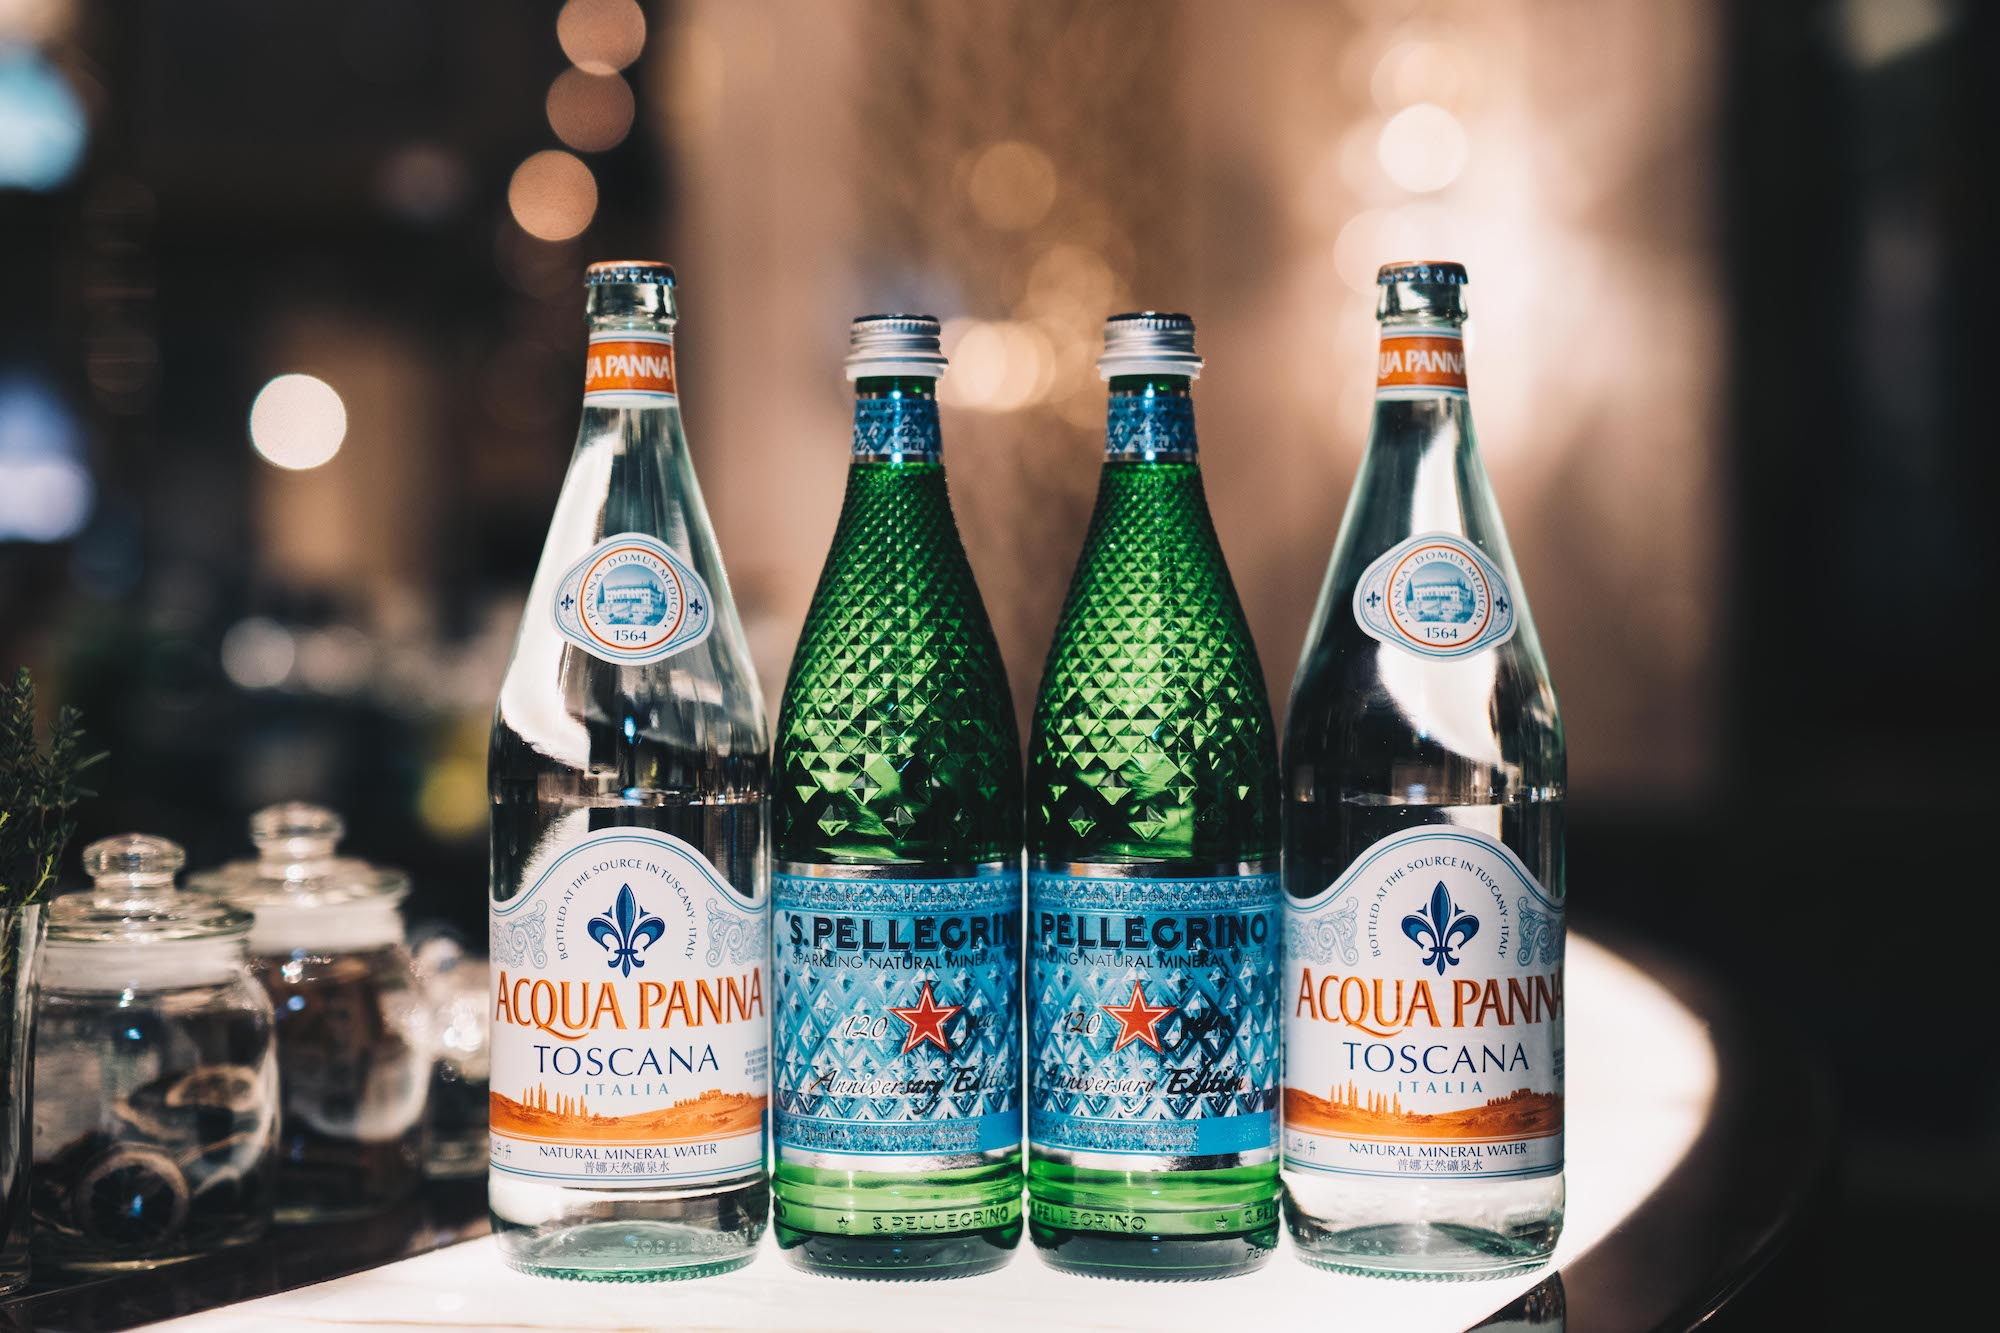 S.Pellegrino and Acqua Panna water bottles